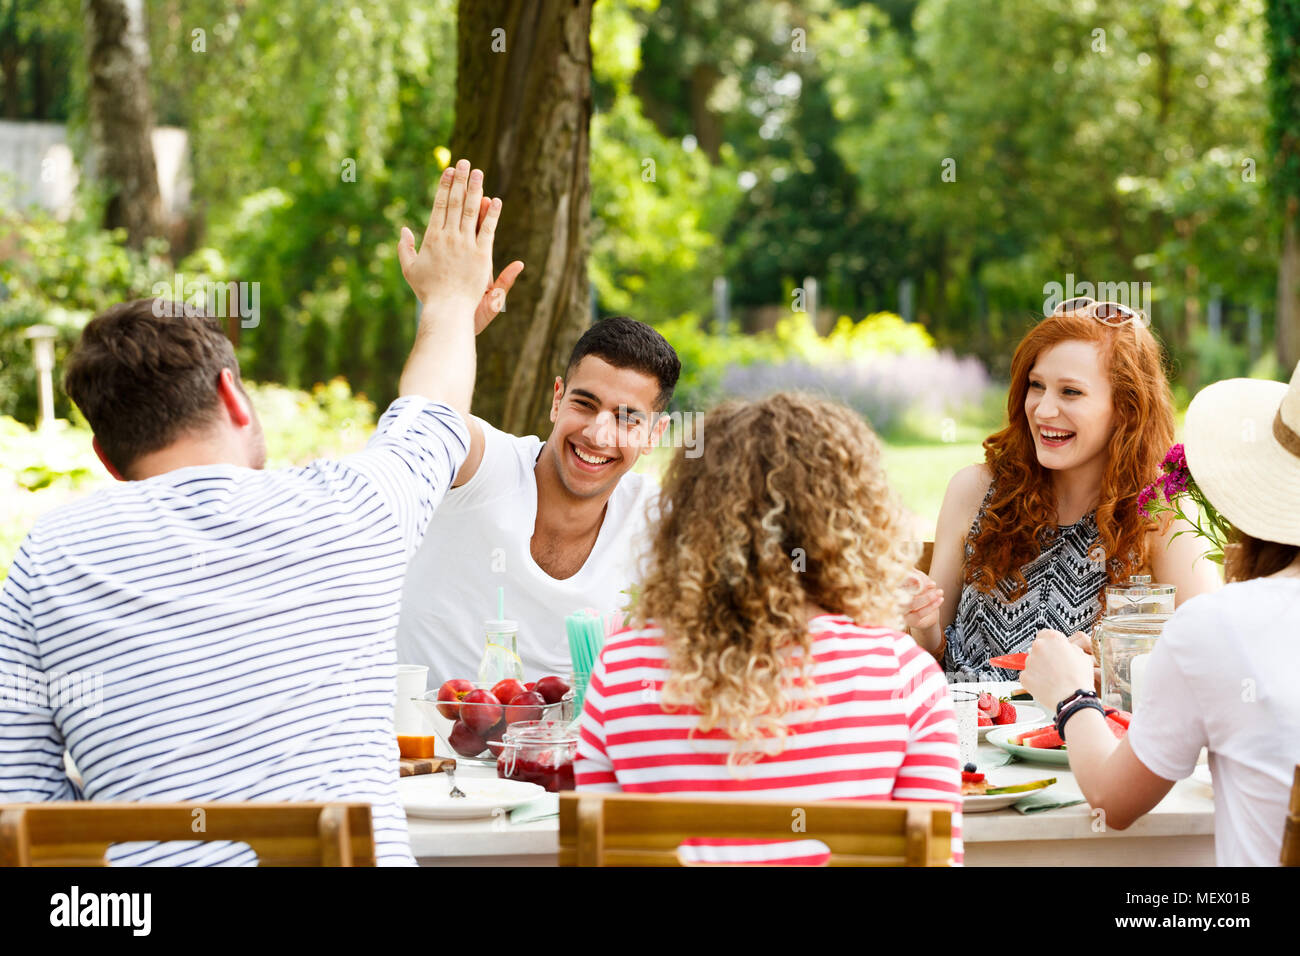 Smiling group of young people having fun, laughing and eating healthy food outside - Stock Image